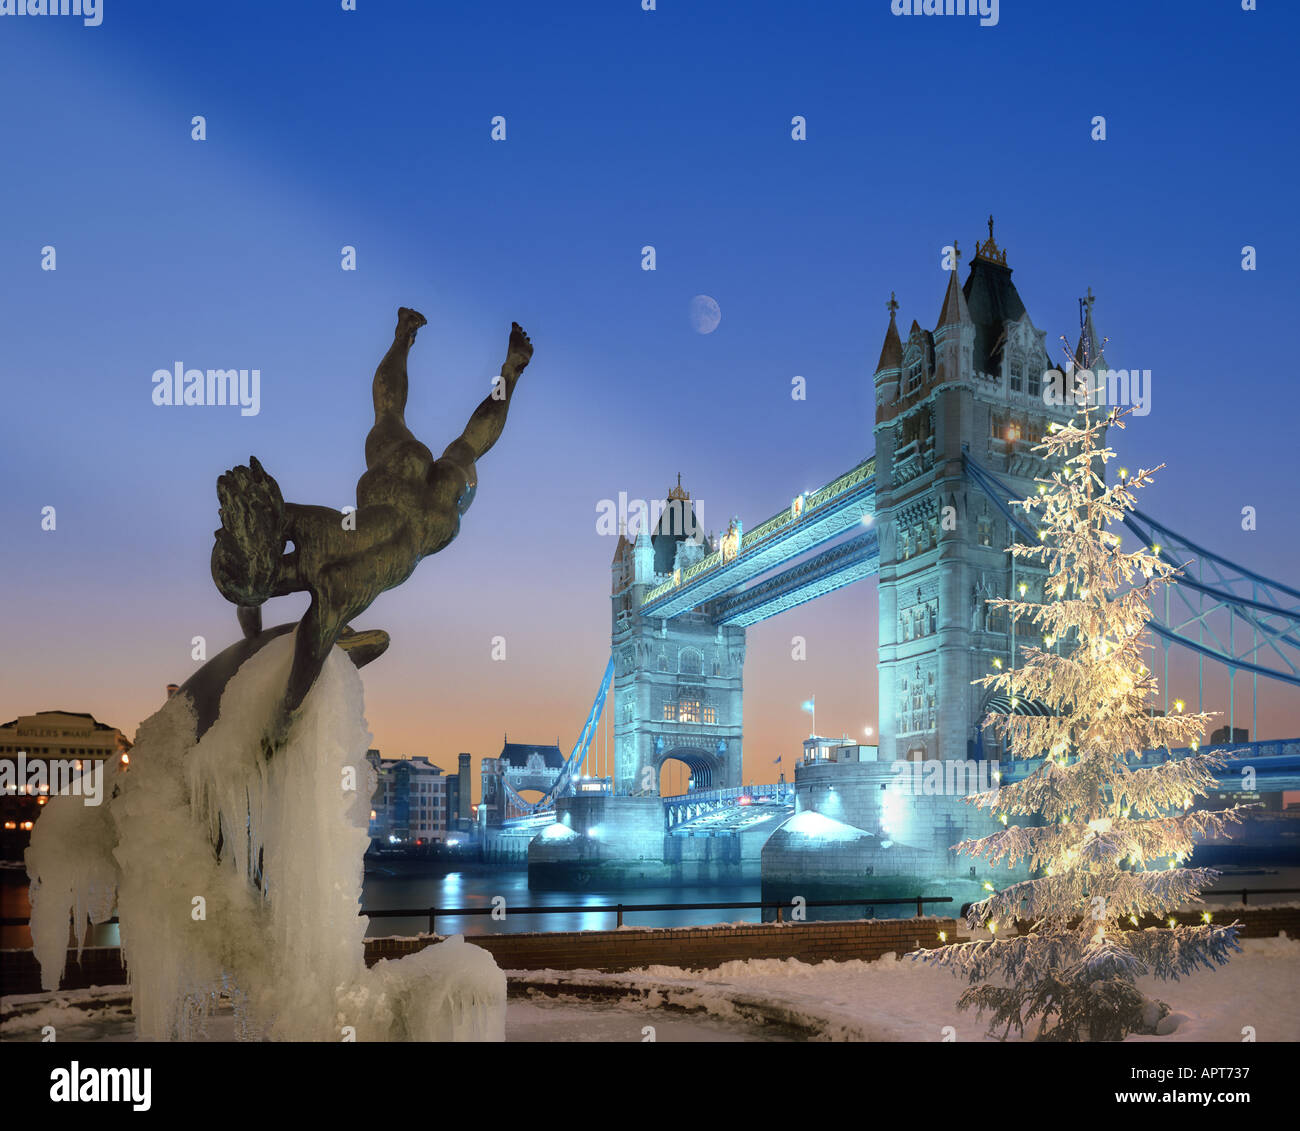 gb london weihnachten an der tower bridge stockfoto. Black Bedroom Furniture Sets. Home Design Ideas